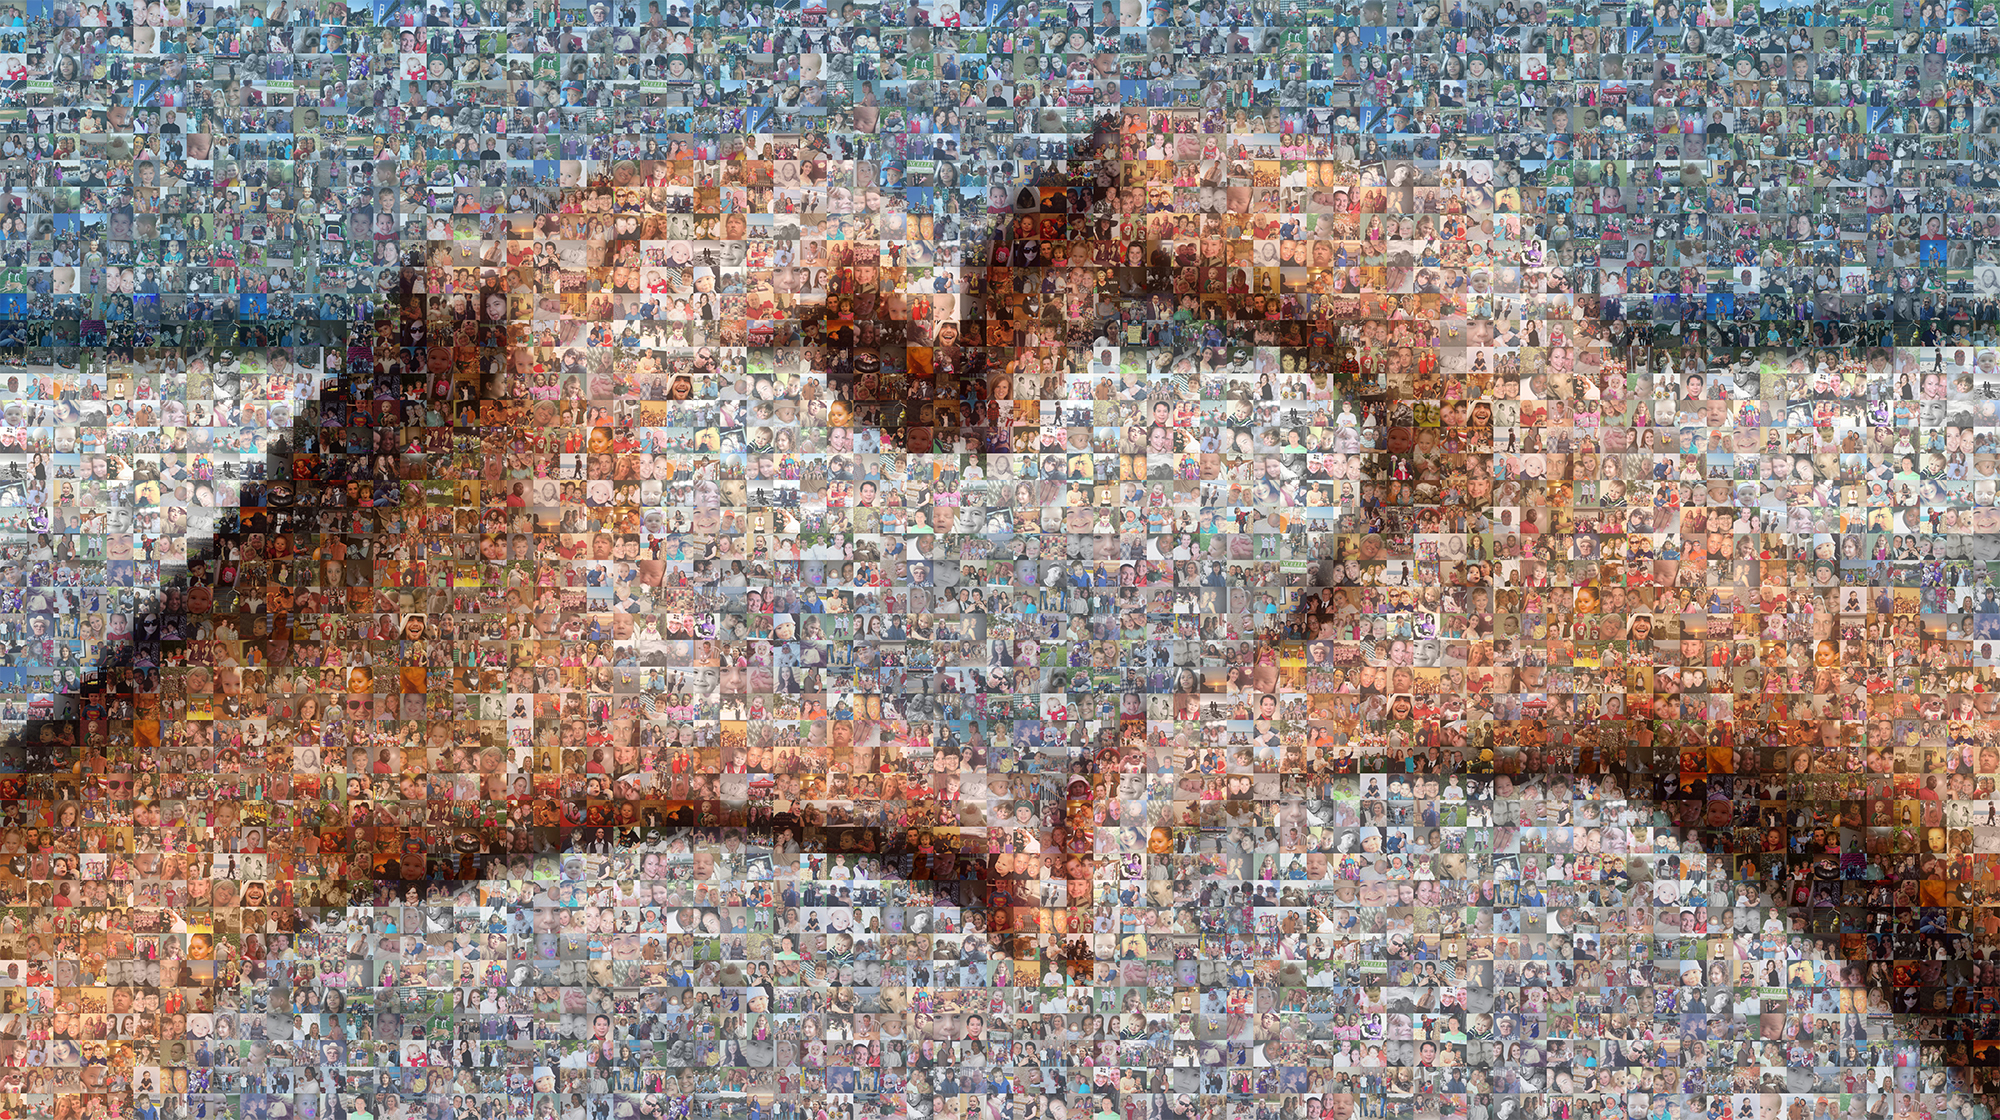 Intel selects Picture Mosaics to feature its mosaic technology at IDF ...